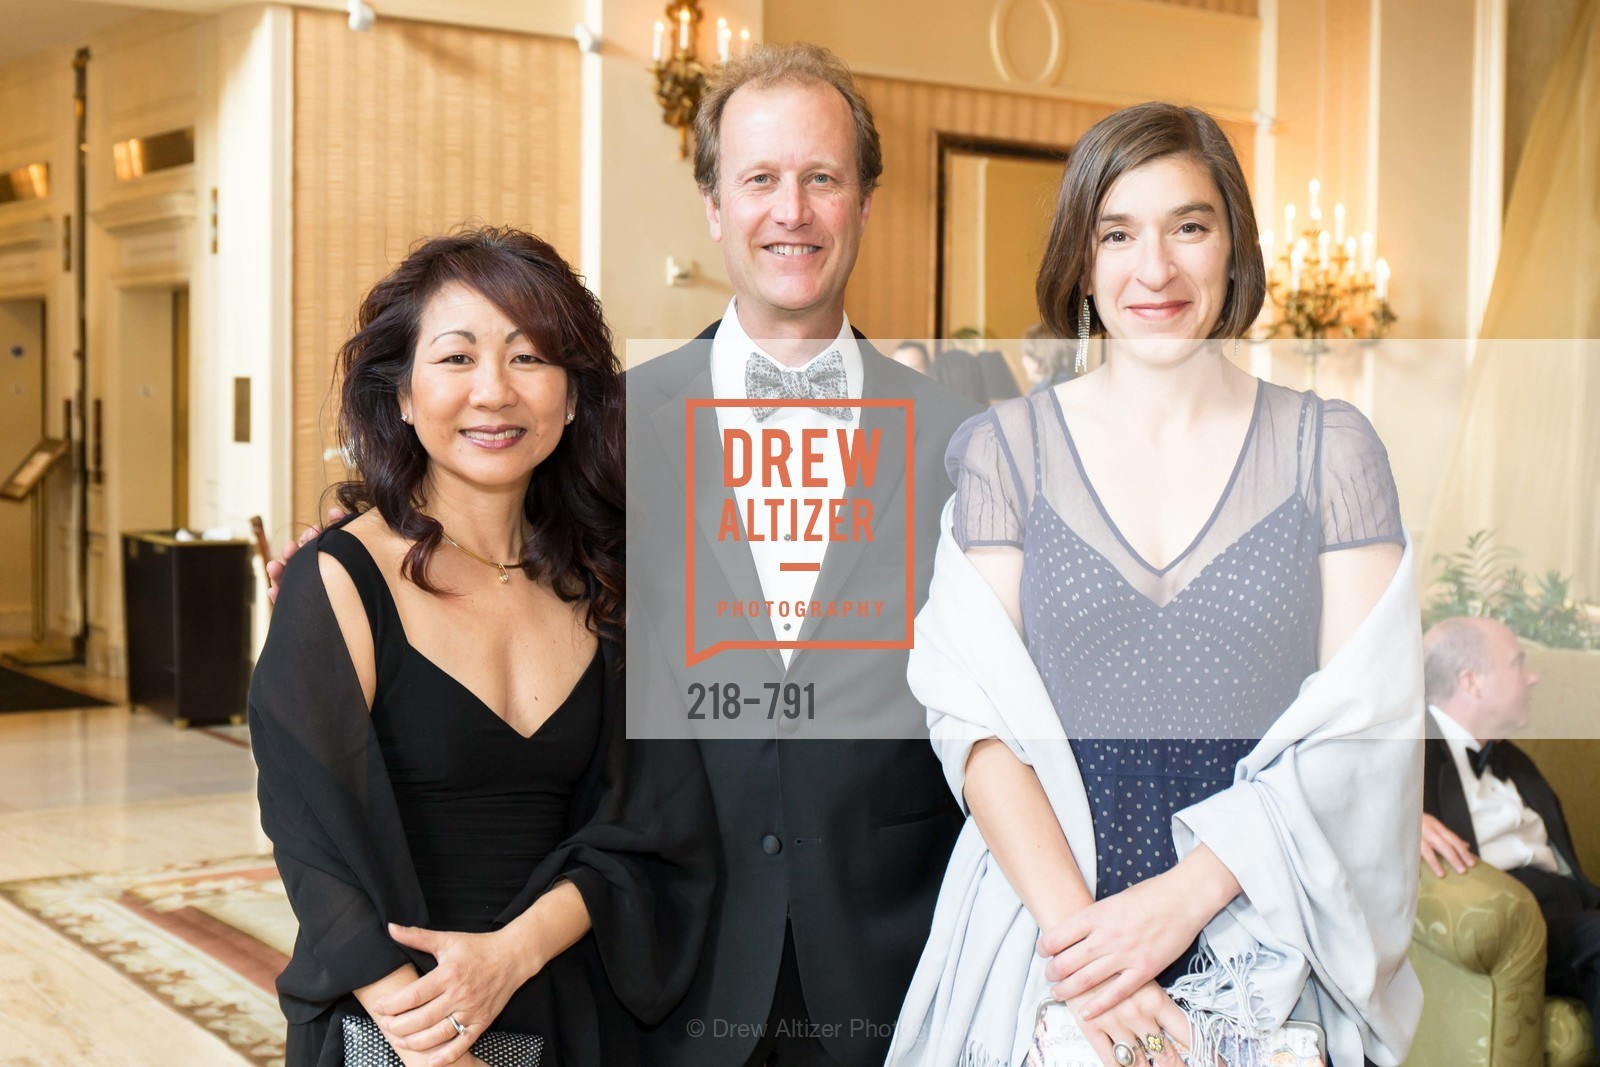 Evon Ballash, Duncan Ballash, Phoebe Schenker, SAN FRANCISCO HERITAGE Soiree 2015, US, April 18th, 2015,Drew Altizer, Drew Altizer Photography, full-service agency, private events, San Francisco photographer, photographer california